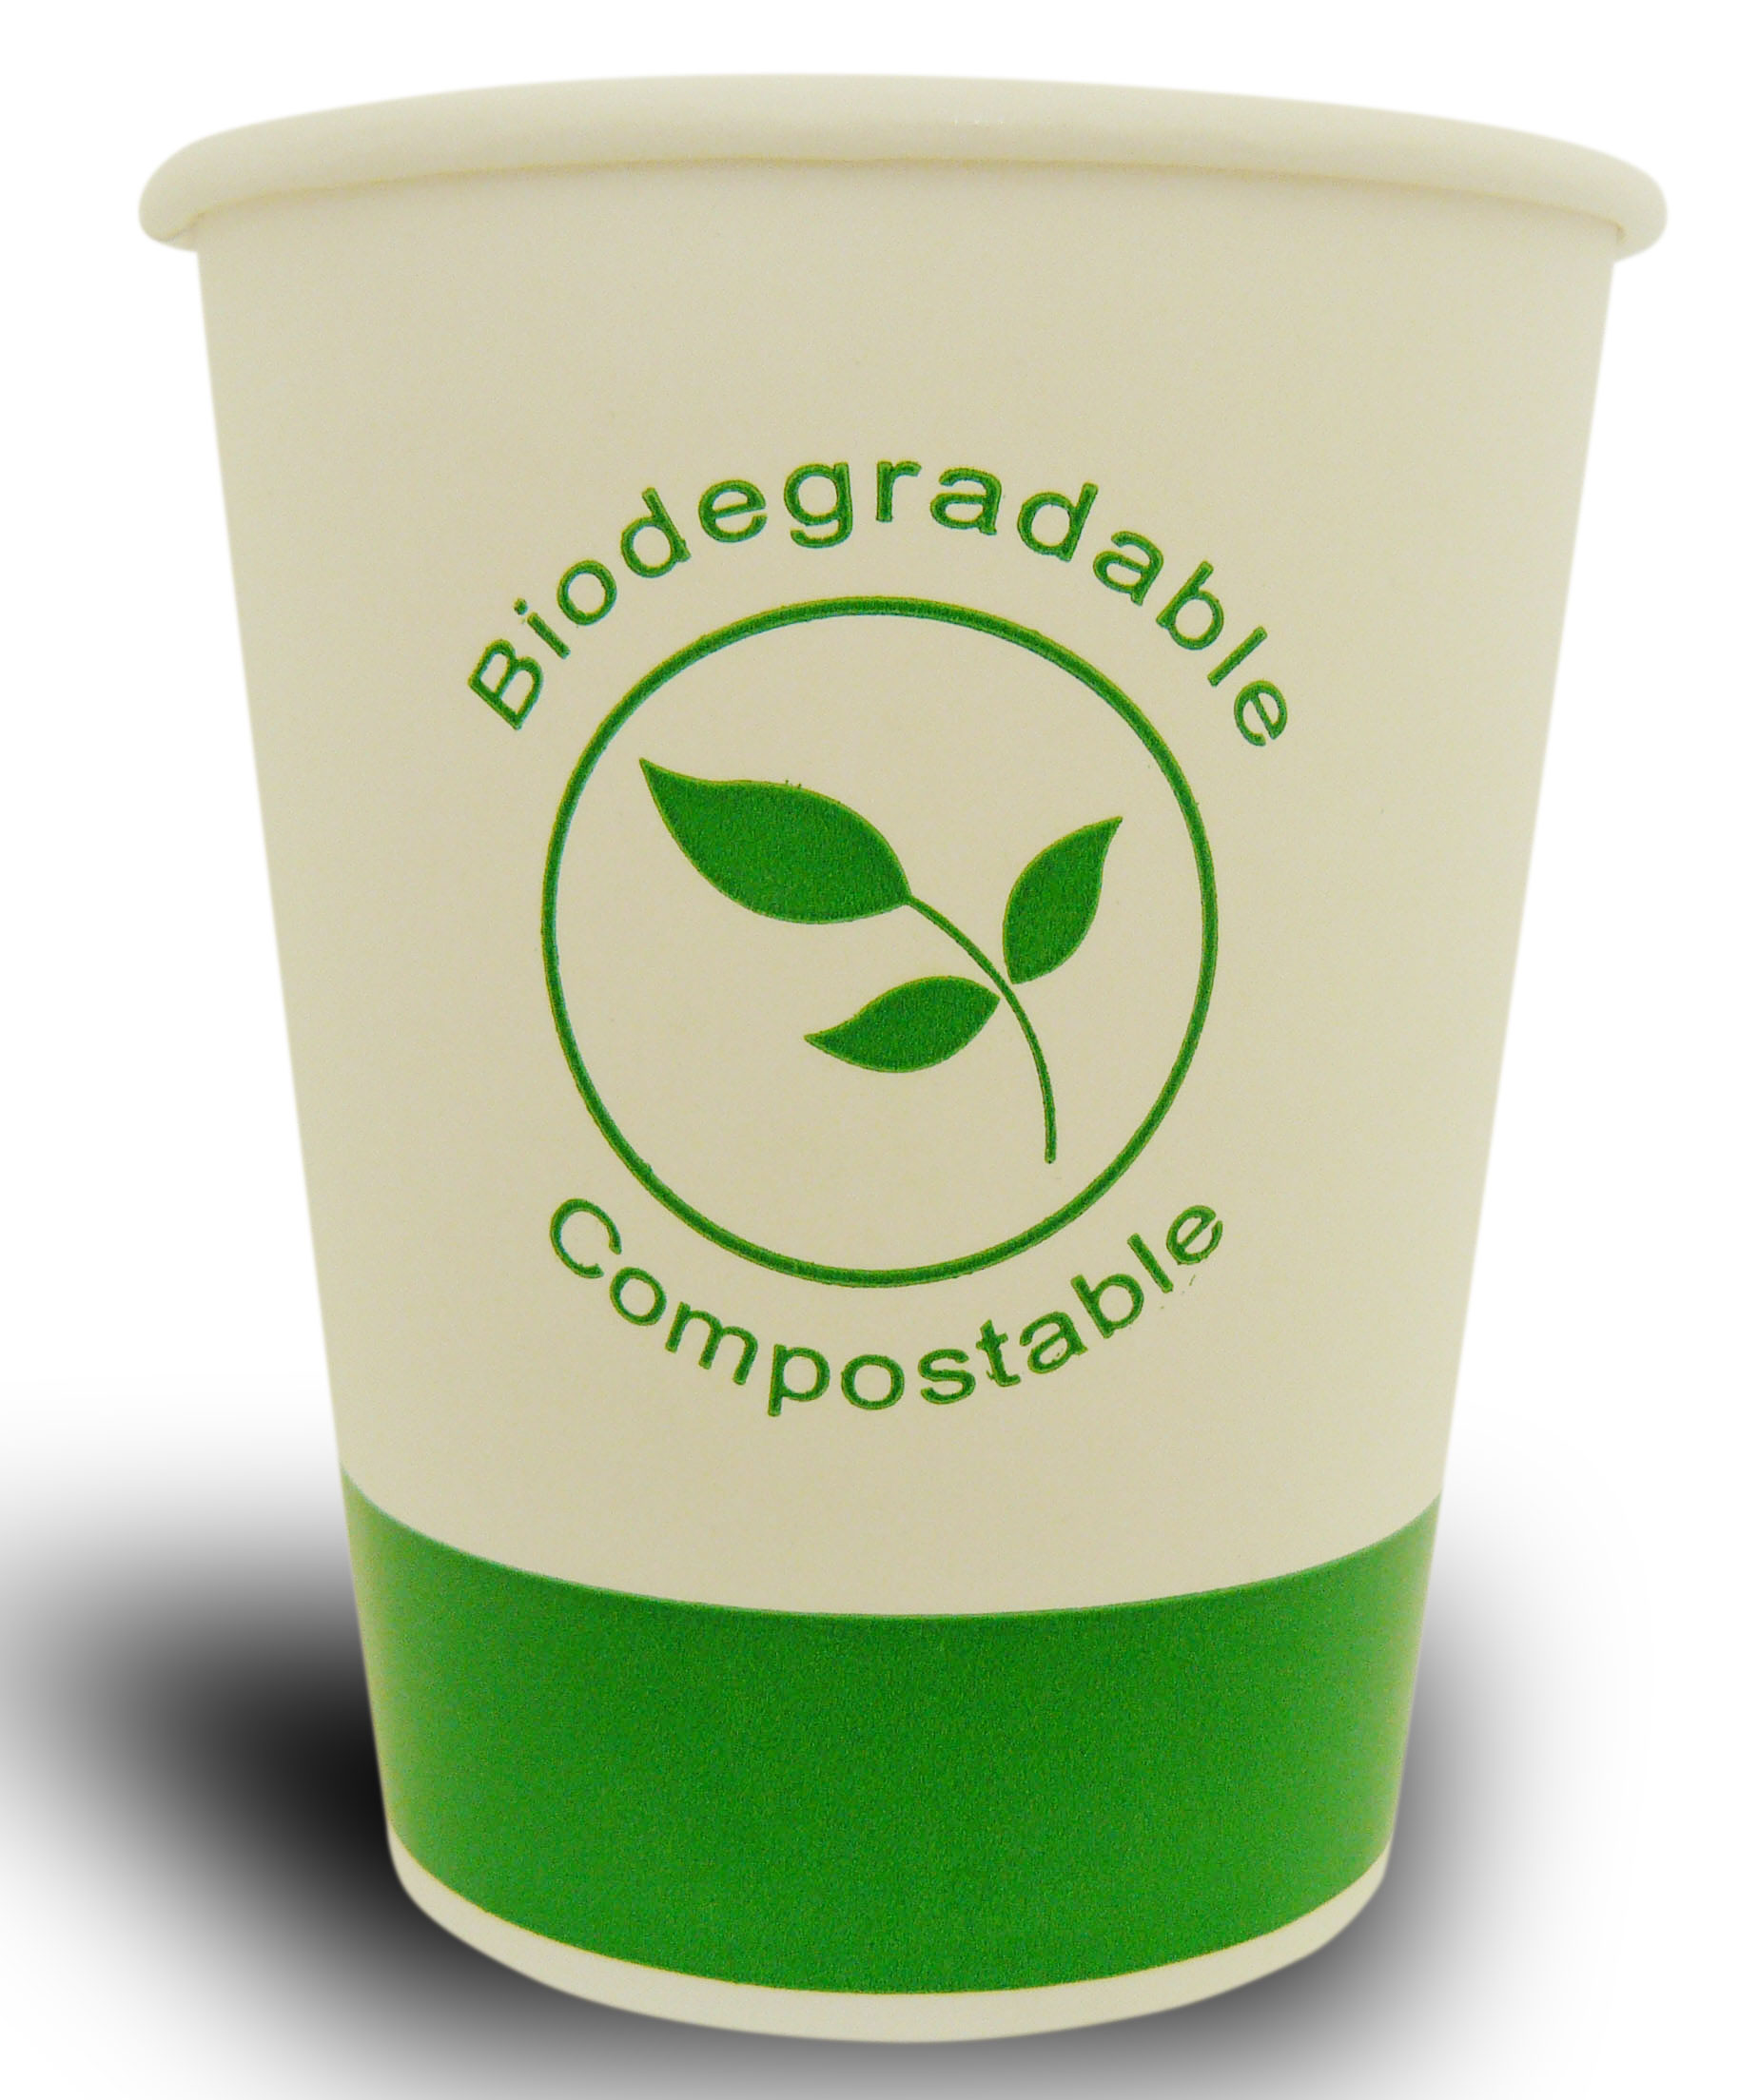 New York City Ban On Foam Containers Is Good News For